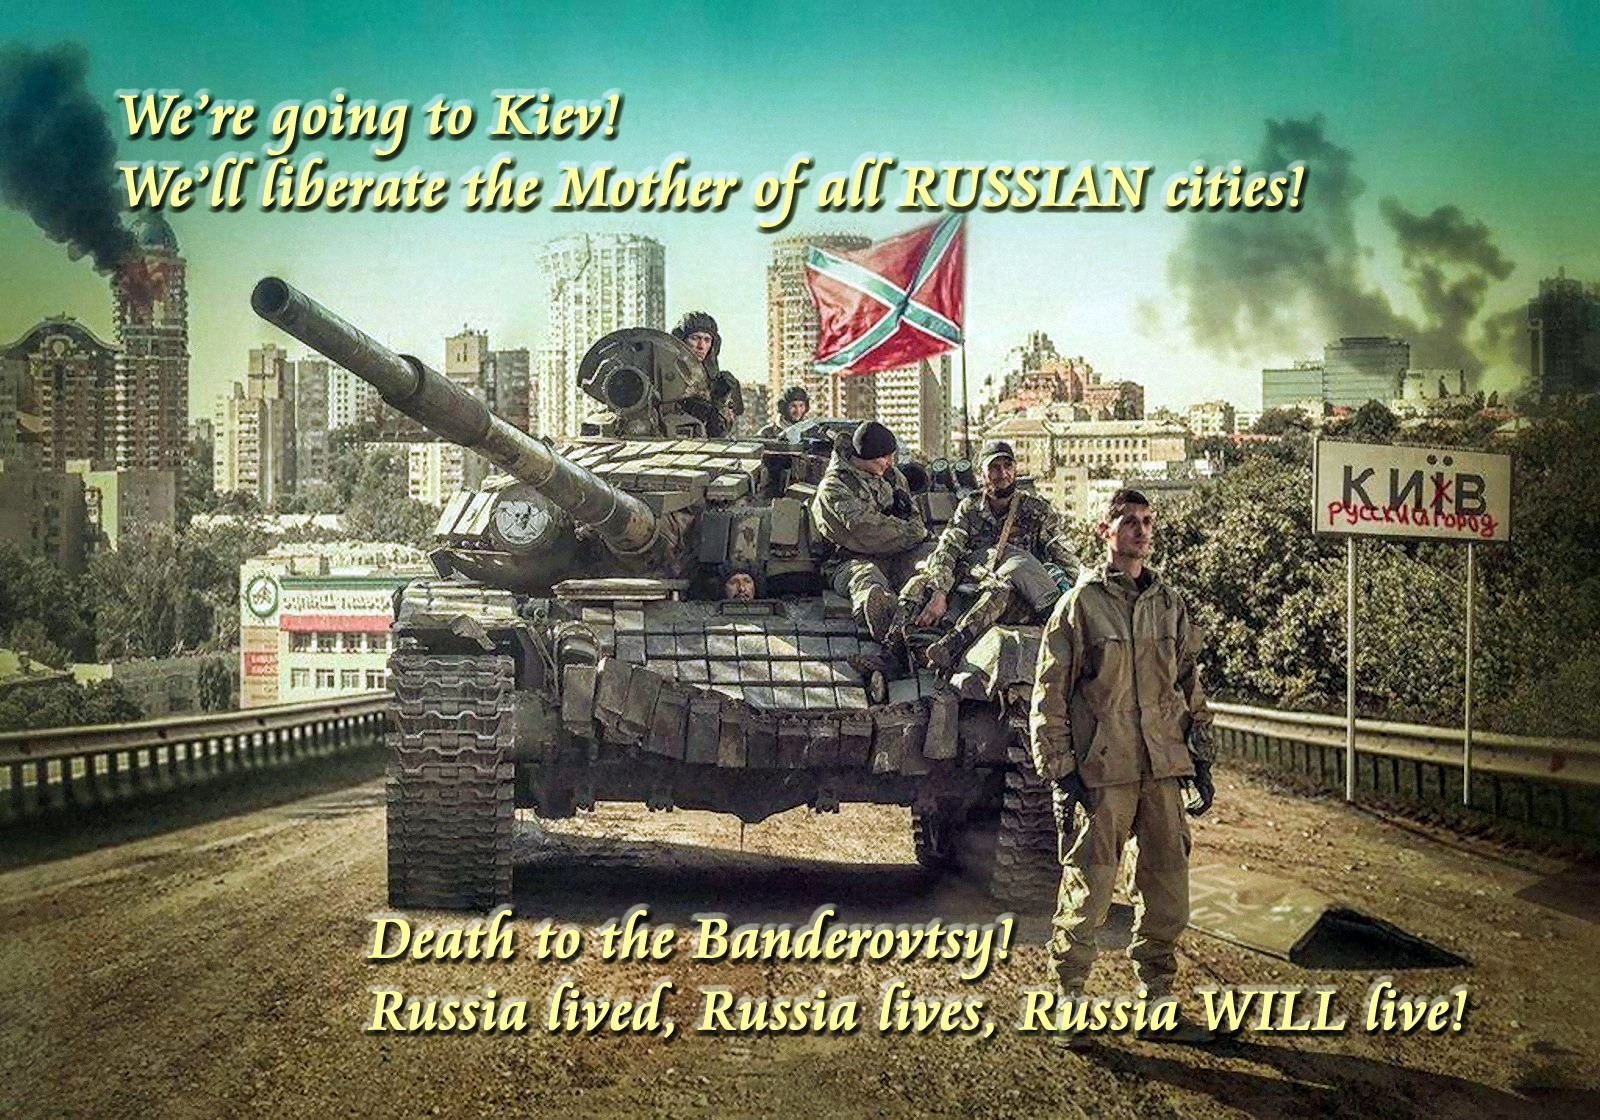 00 novorossiya were going to kiev 251215